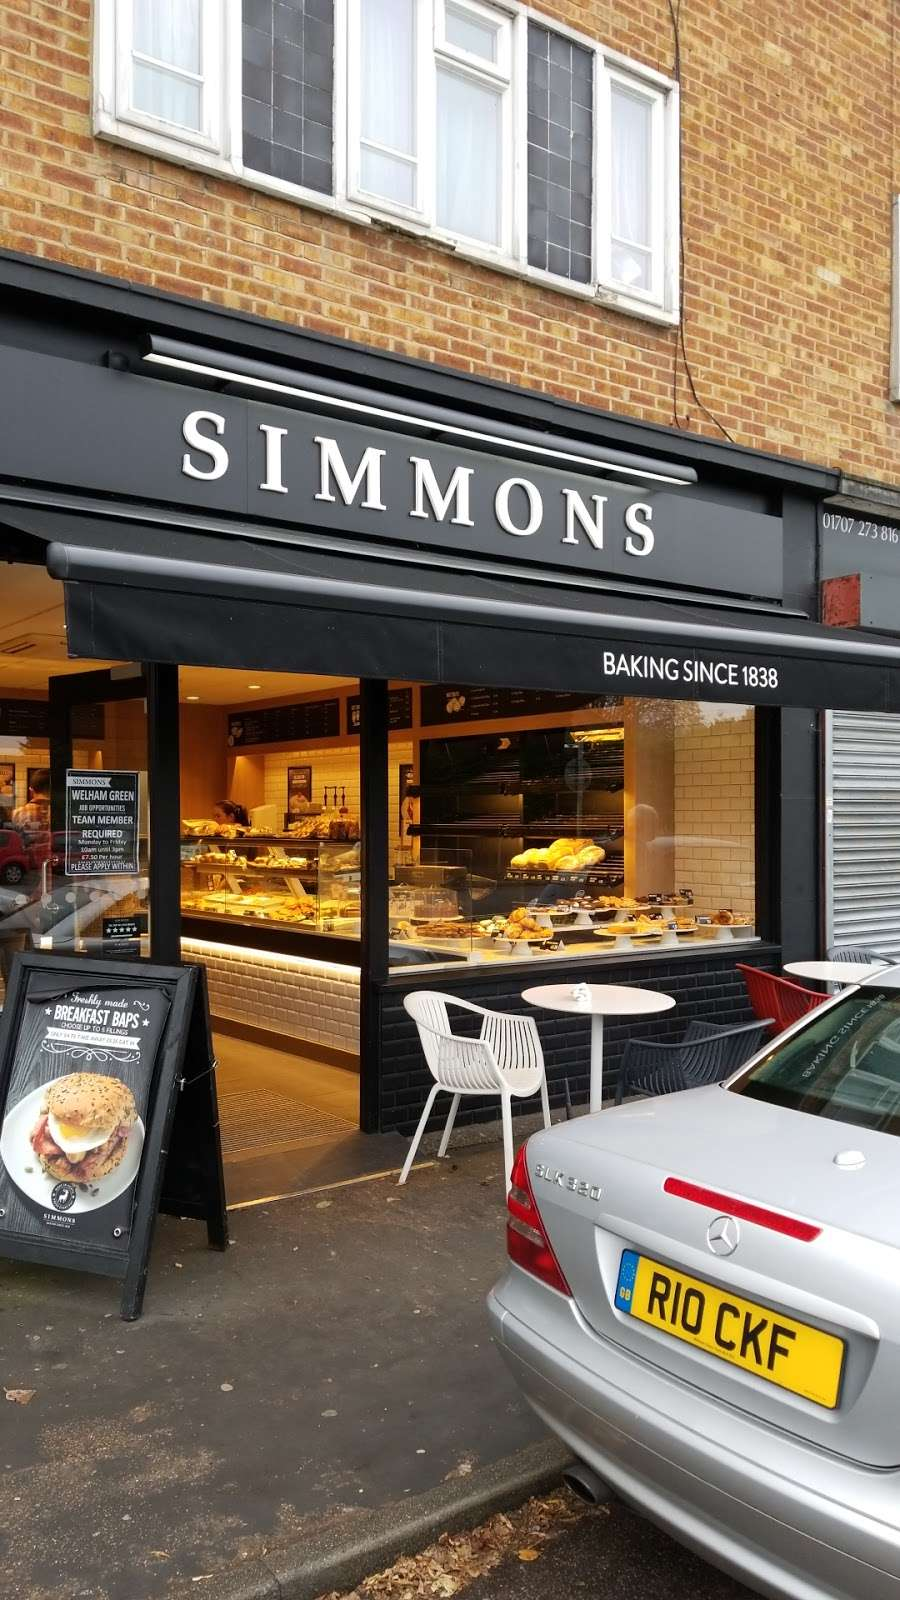 Simmons Bakers - bakery  | Photo 1 of 2 | Address: 51 Dellsome Ln, Welham Green, Hatfield AL9 7DY, UK | Phone: 01707 263843